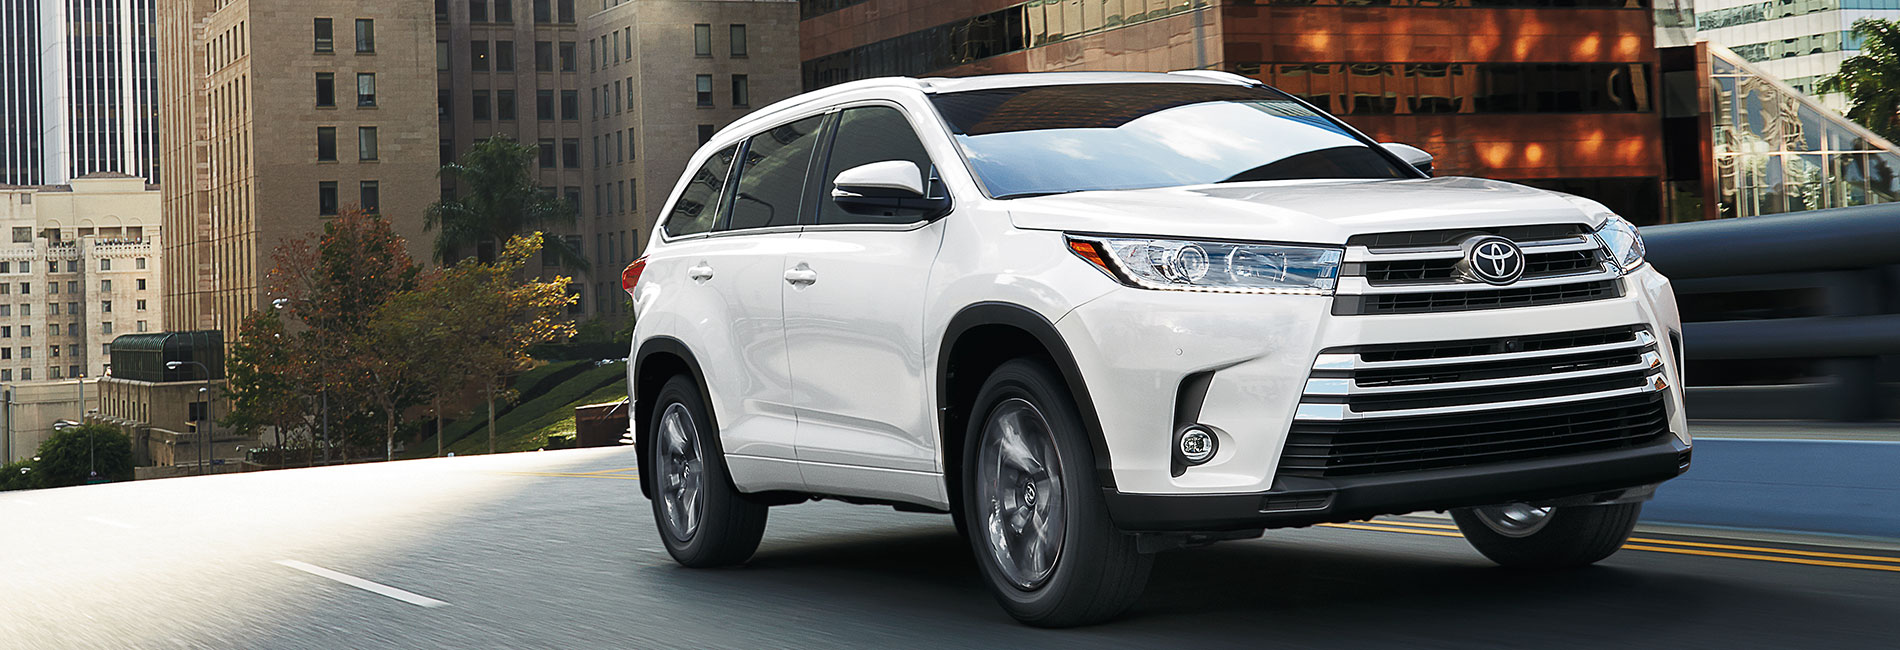 Toyota Highlander Exterior Vehicle Features